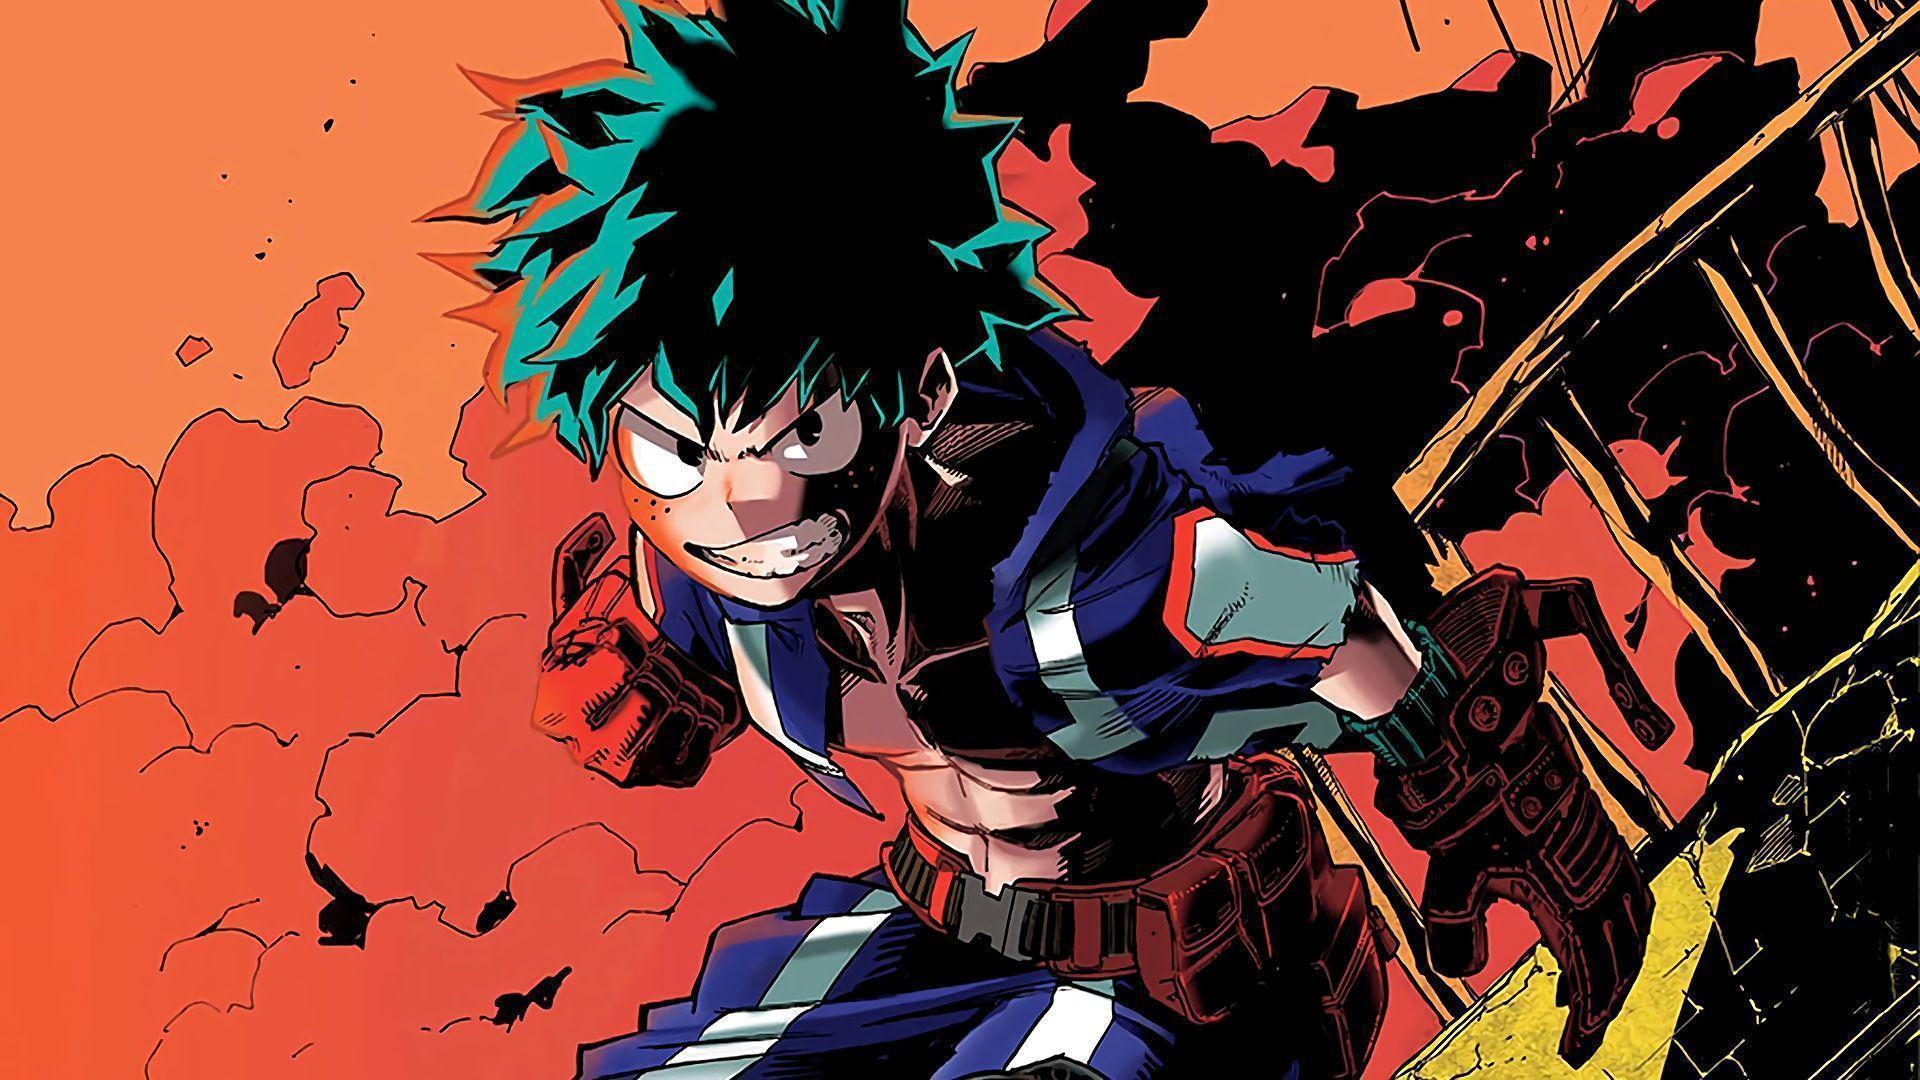 Tons of awesome my hero academia chibi wallpapers to download for free. My Hero Academia Wallpapers - Wallpaper Cave